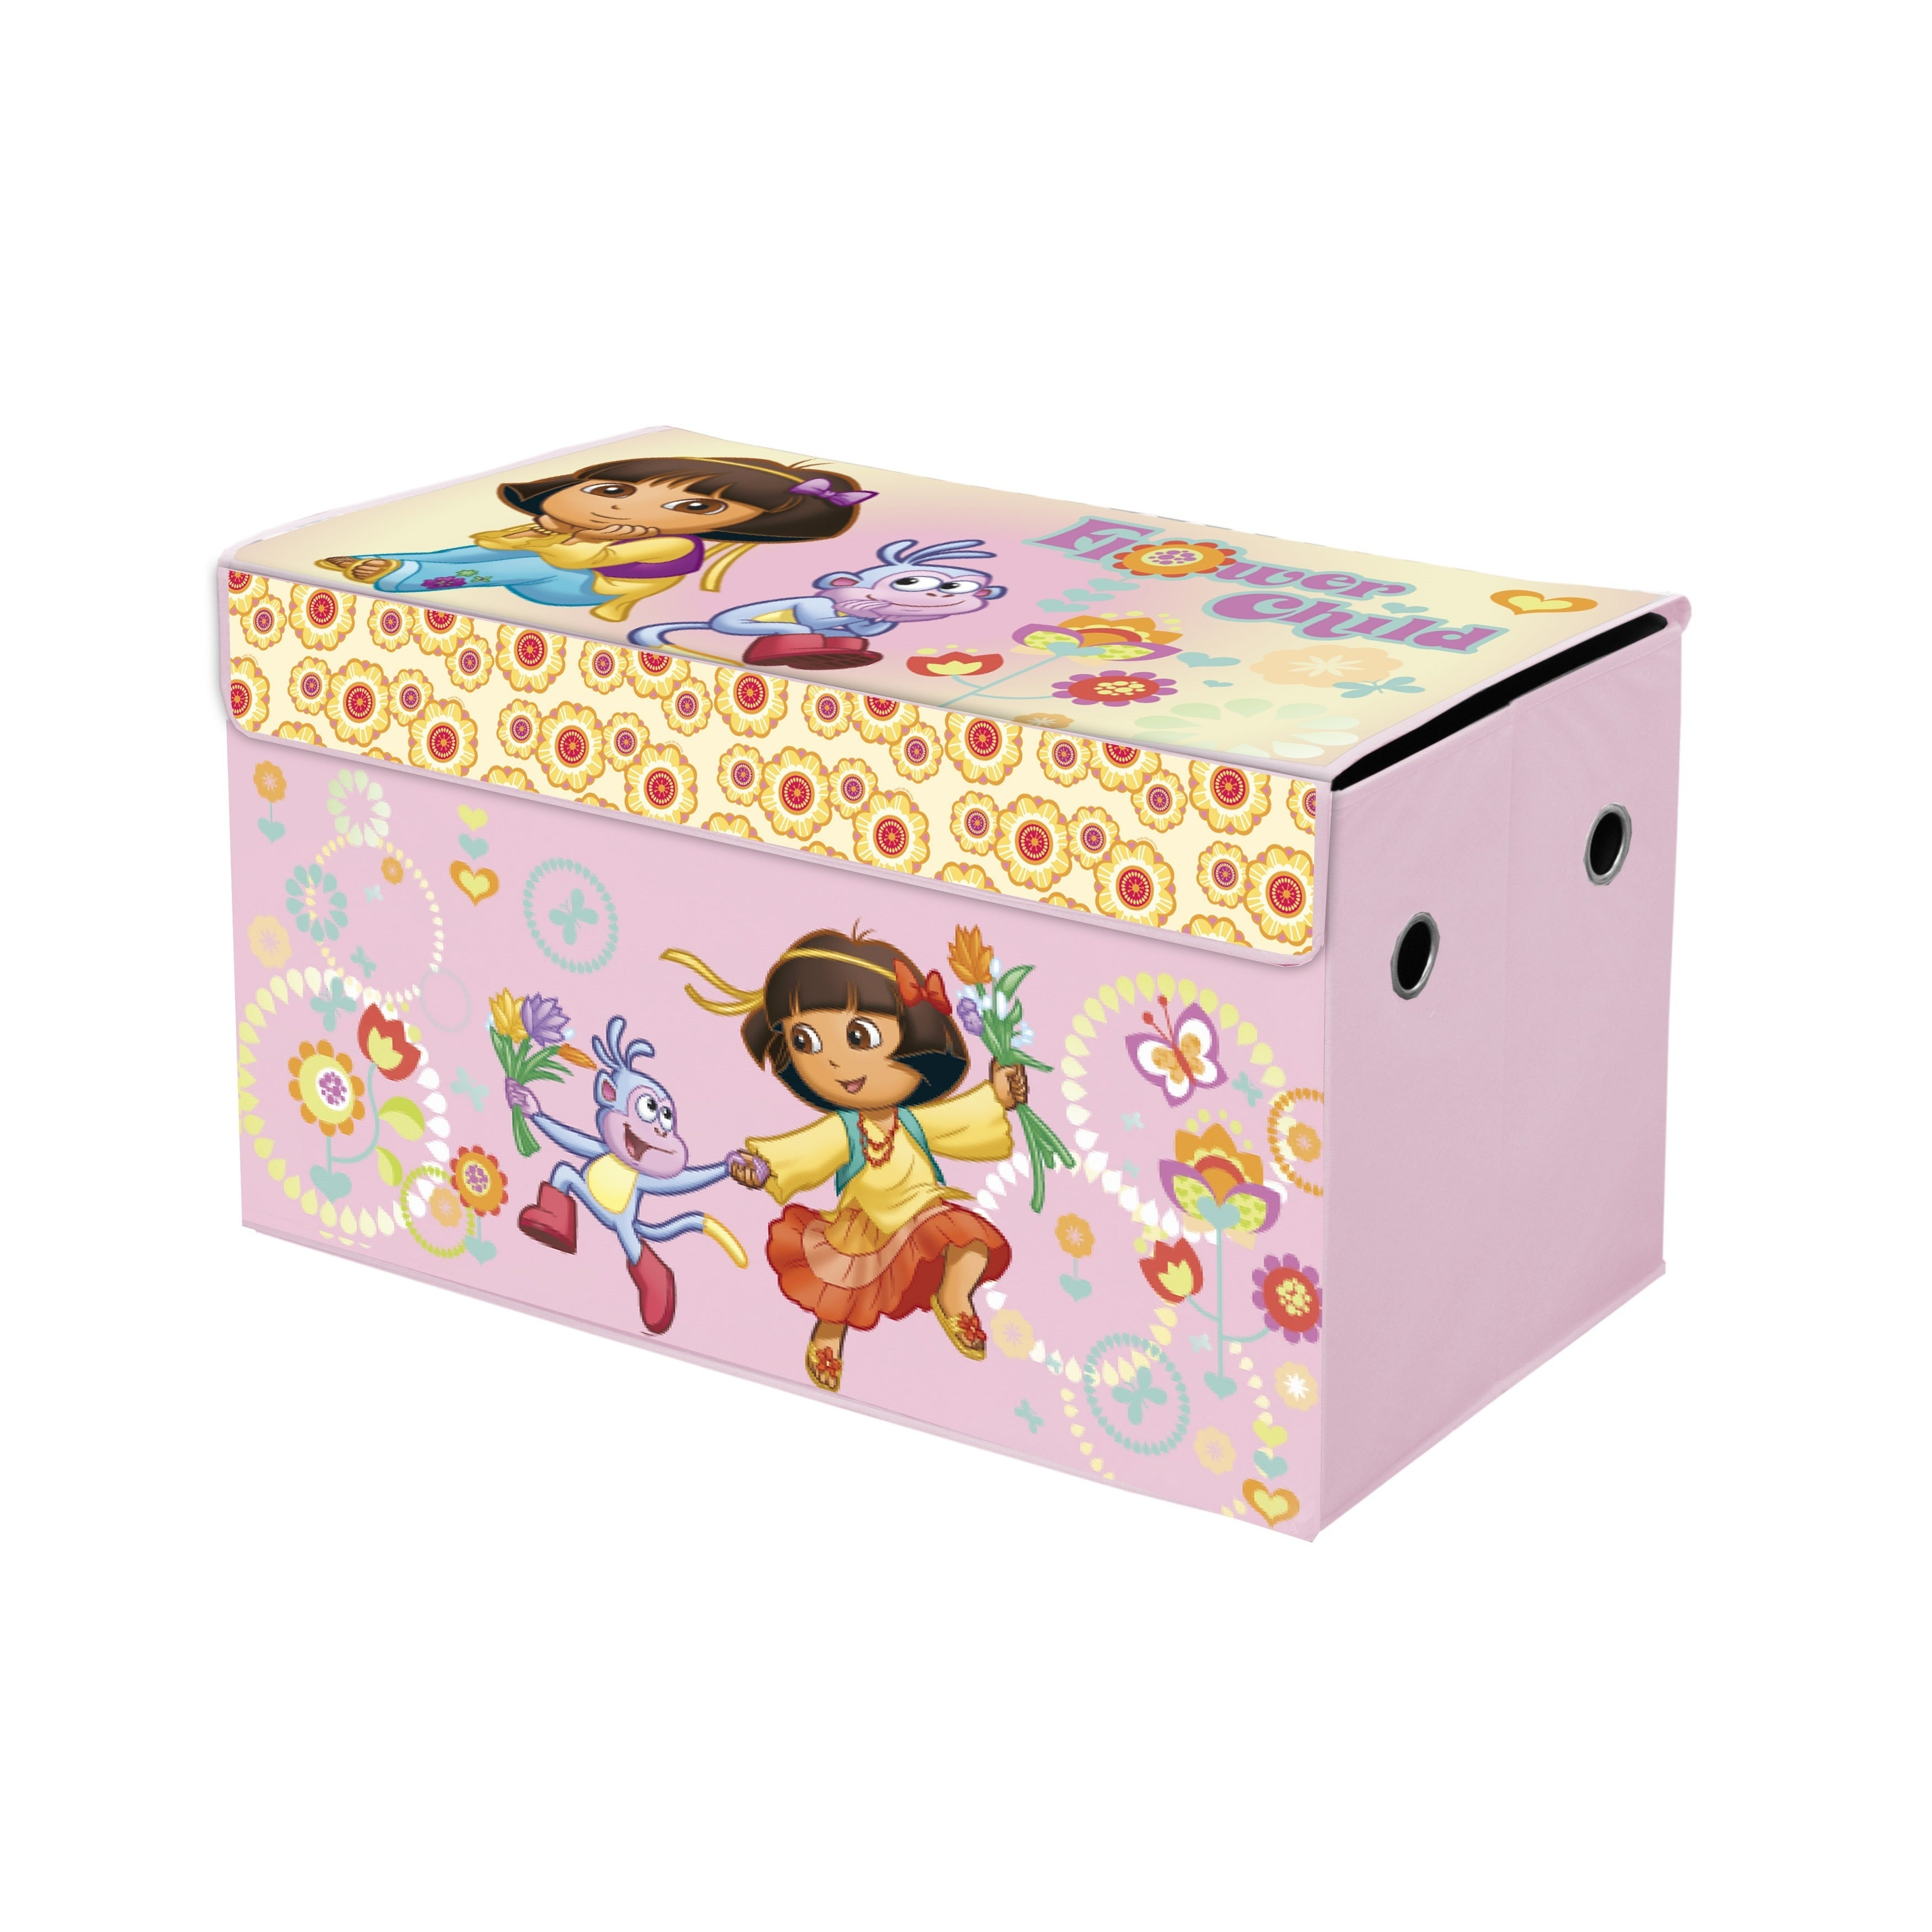 Nickelodeon Dora The Explorer Oversized Collapsible Toy S...